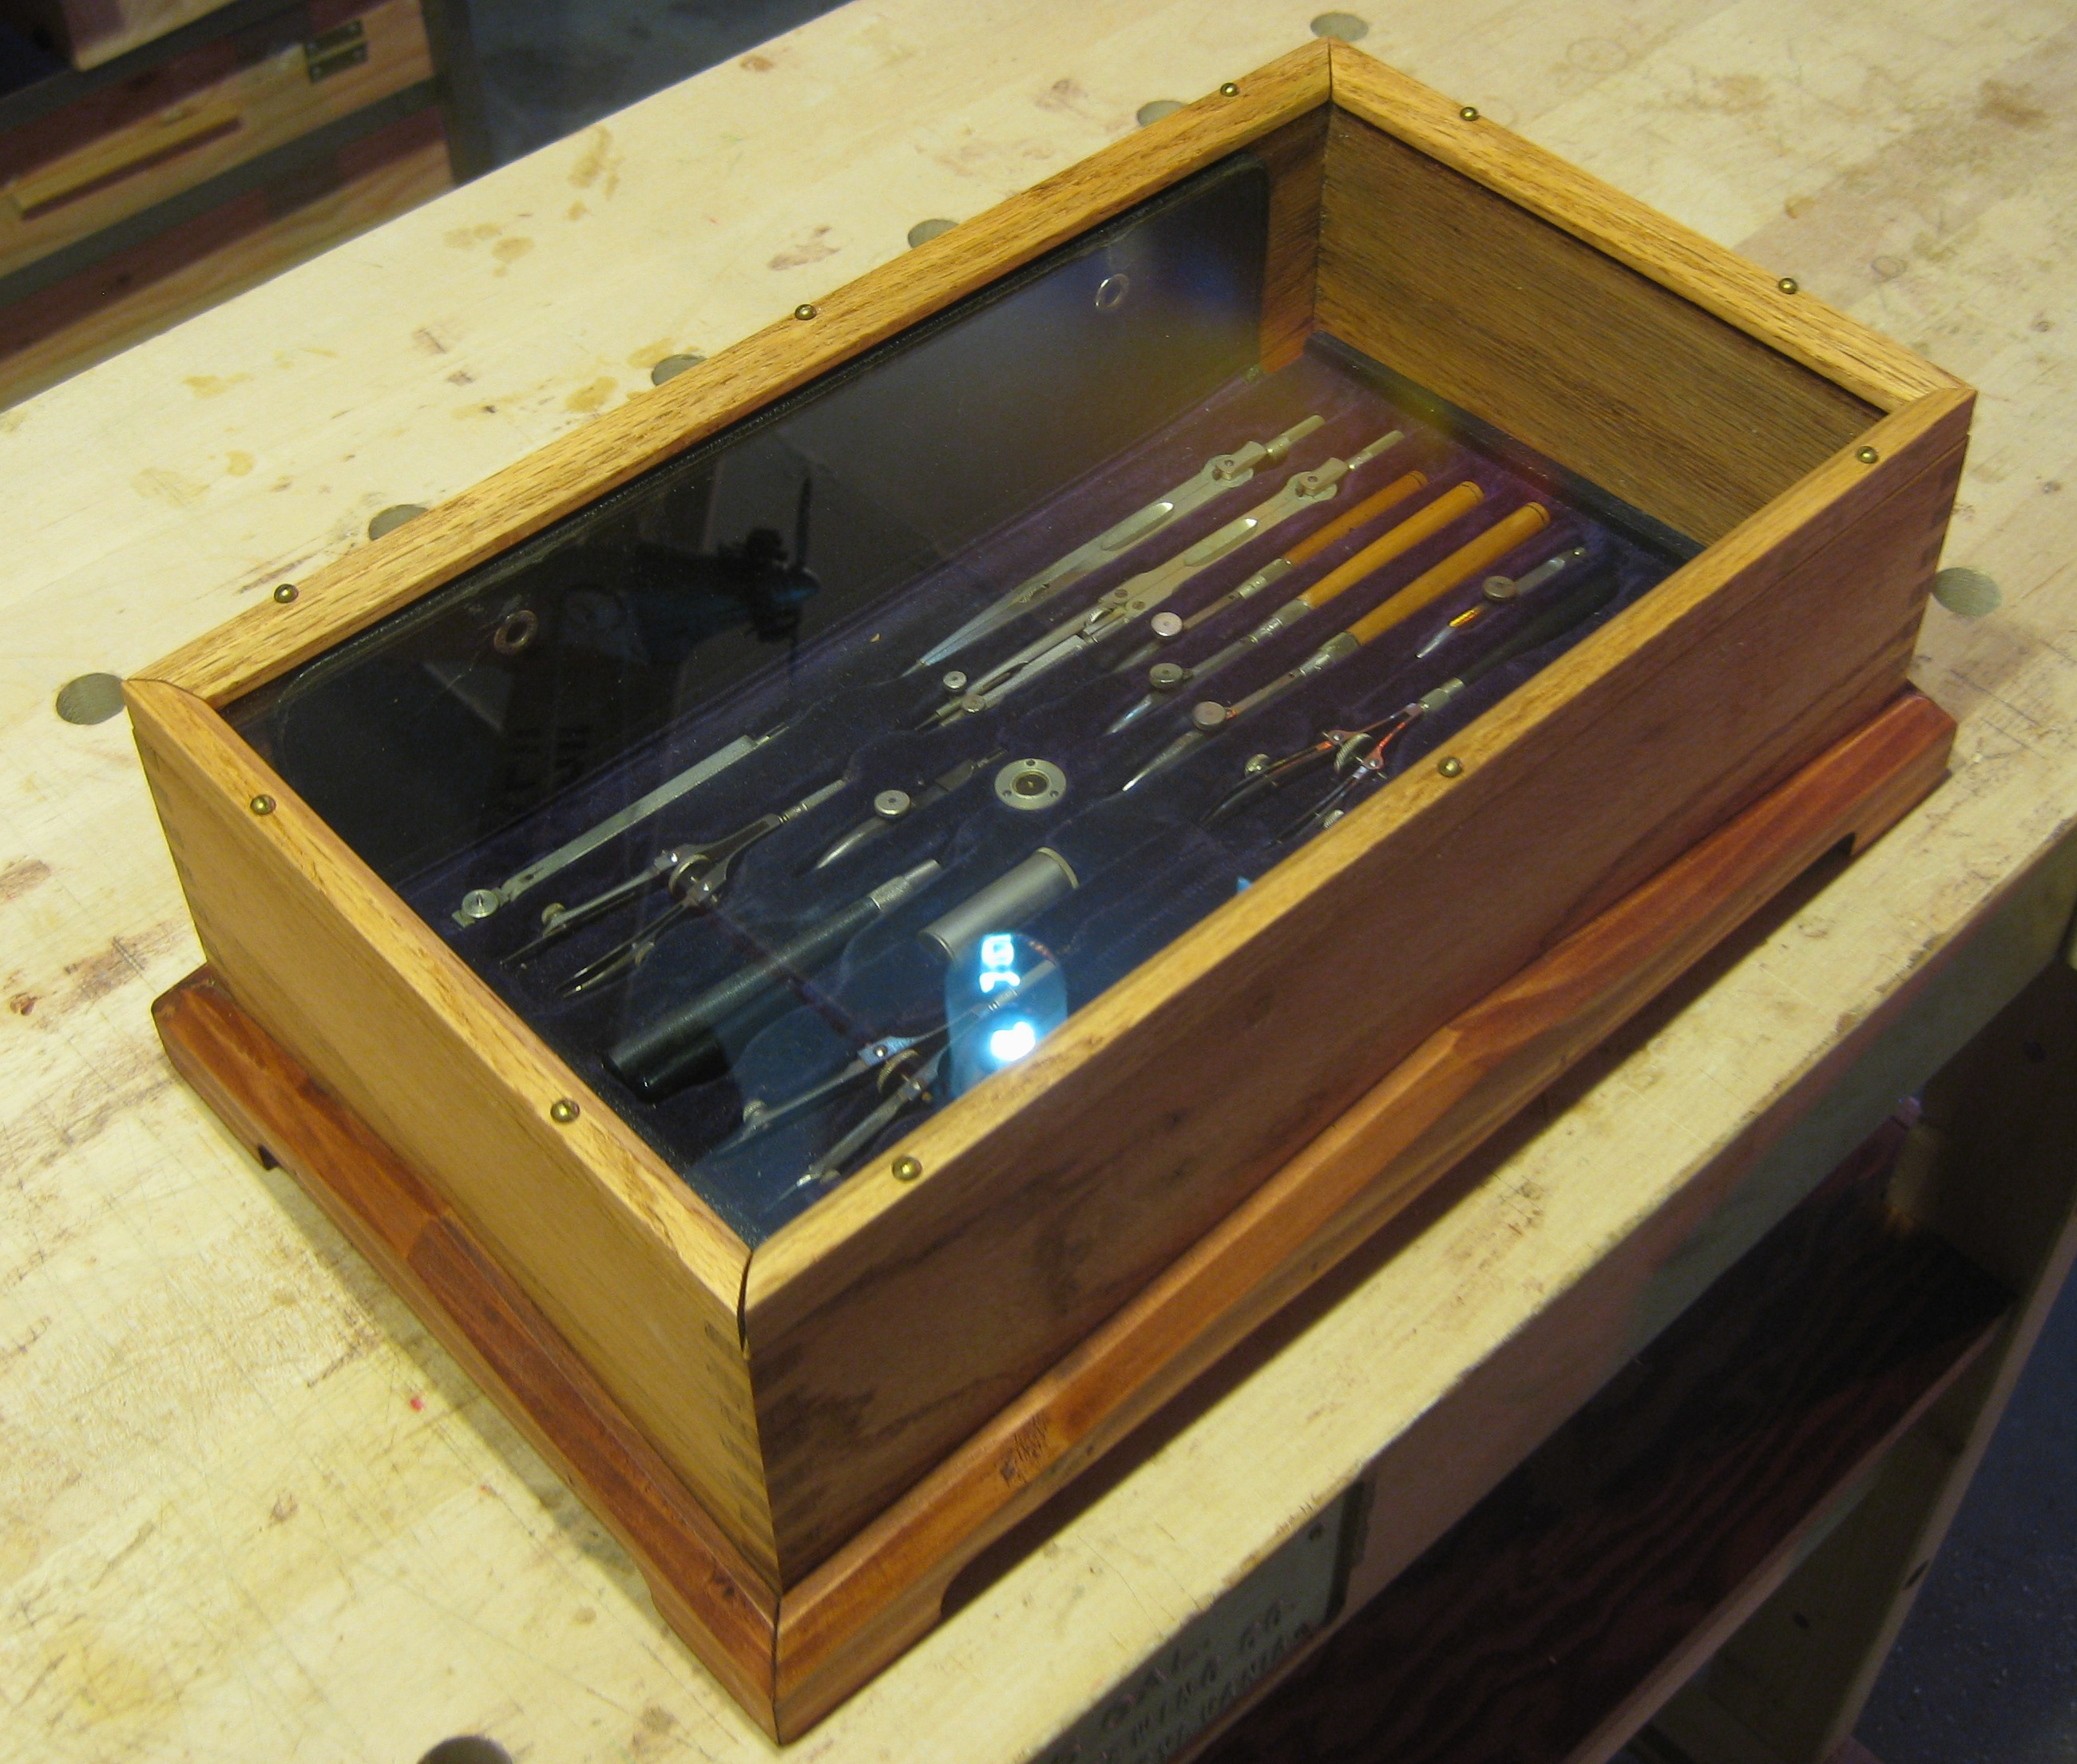 Table top display case - This Small Table Top Display Case Is In Box Jointed Oak With Redwood Trim